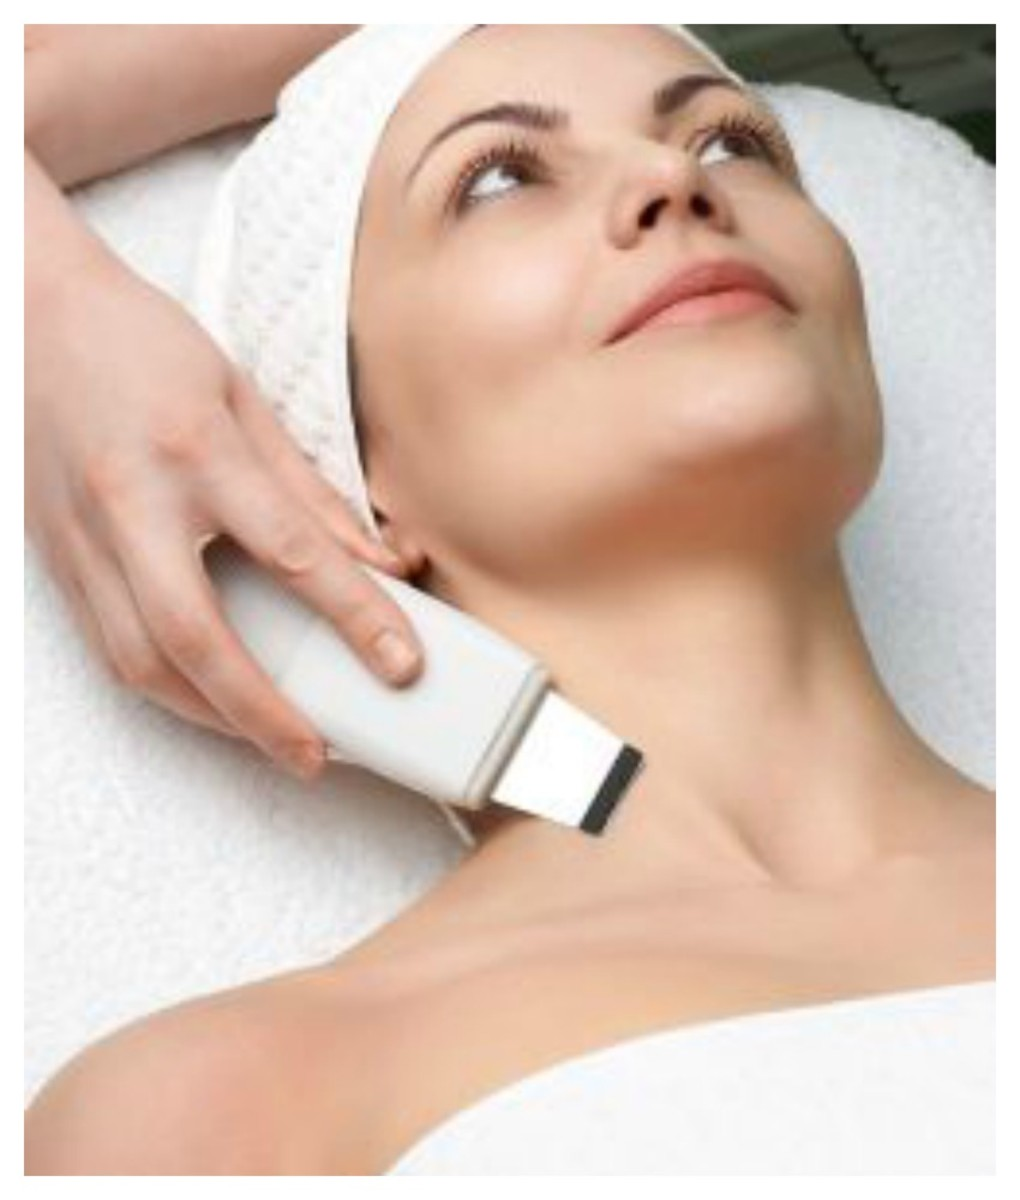 Delay and prevent neck wrinkles with effective treatments